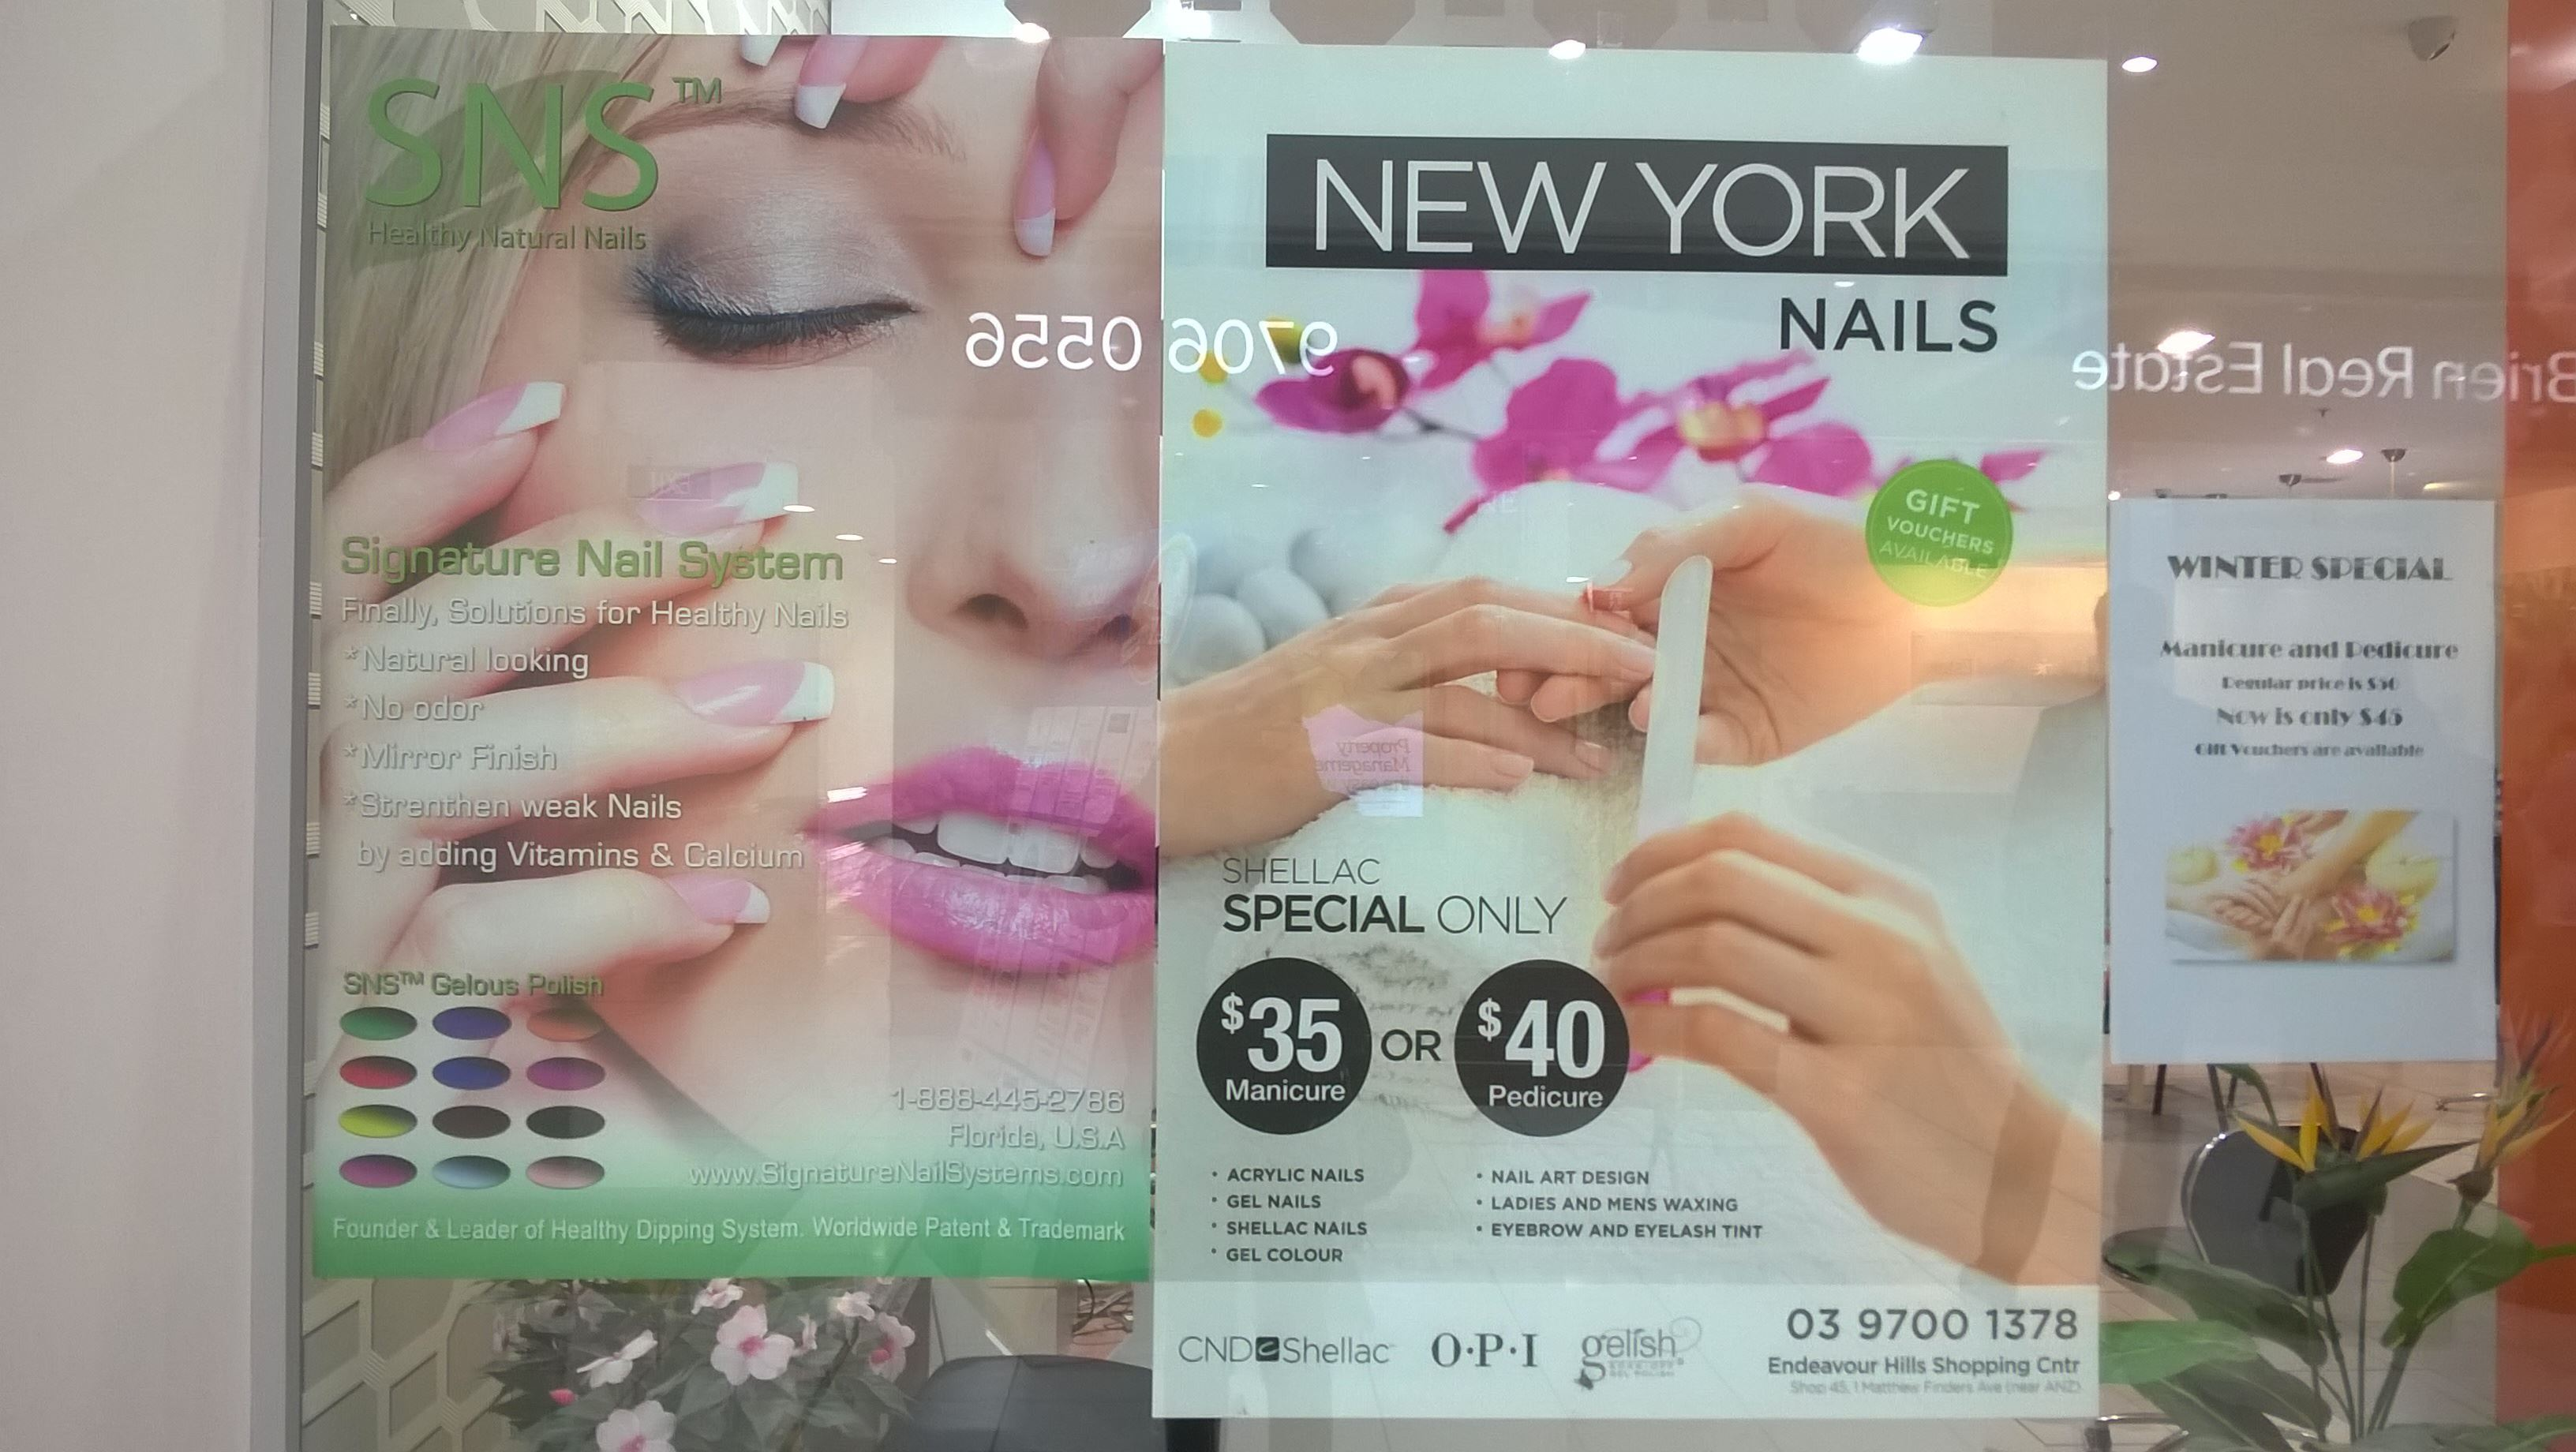 New York Nails Endeavour Hills   Acrylic Nails   Nails